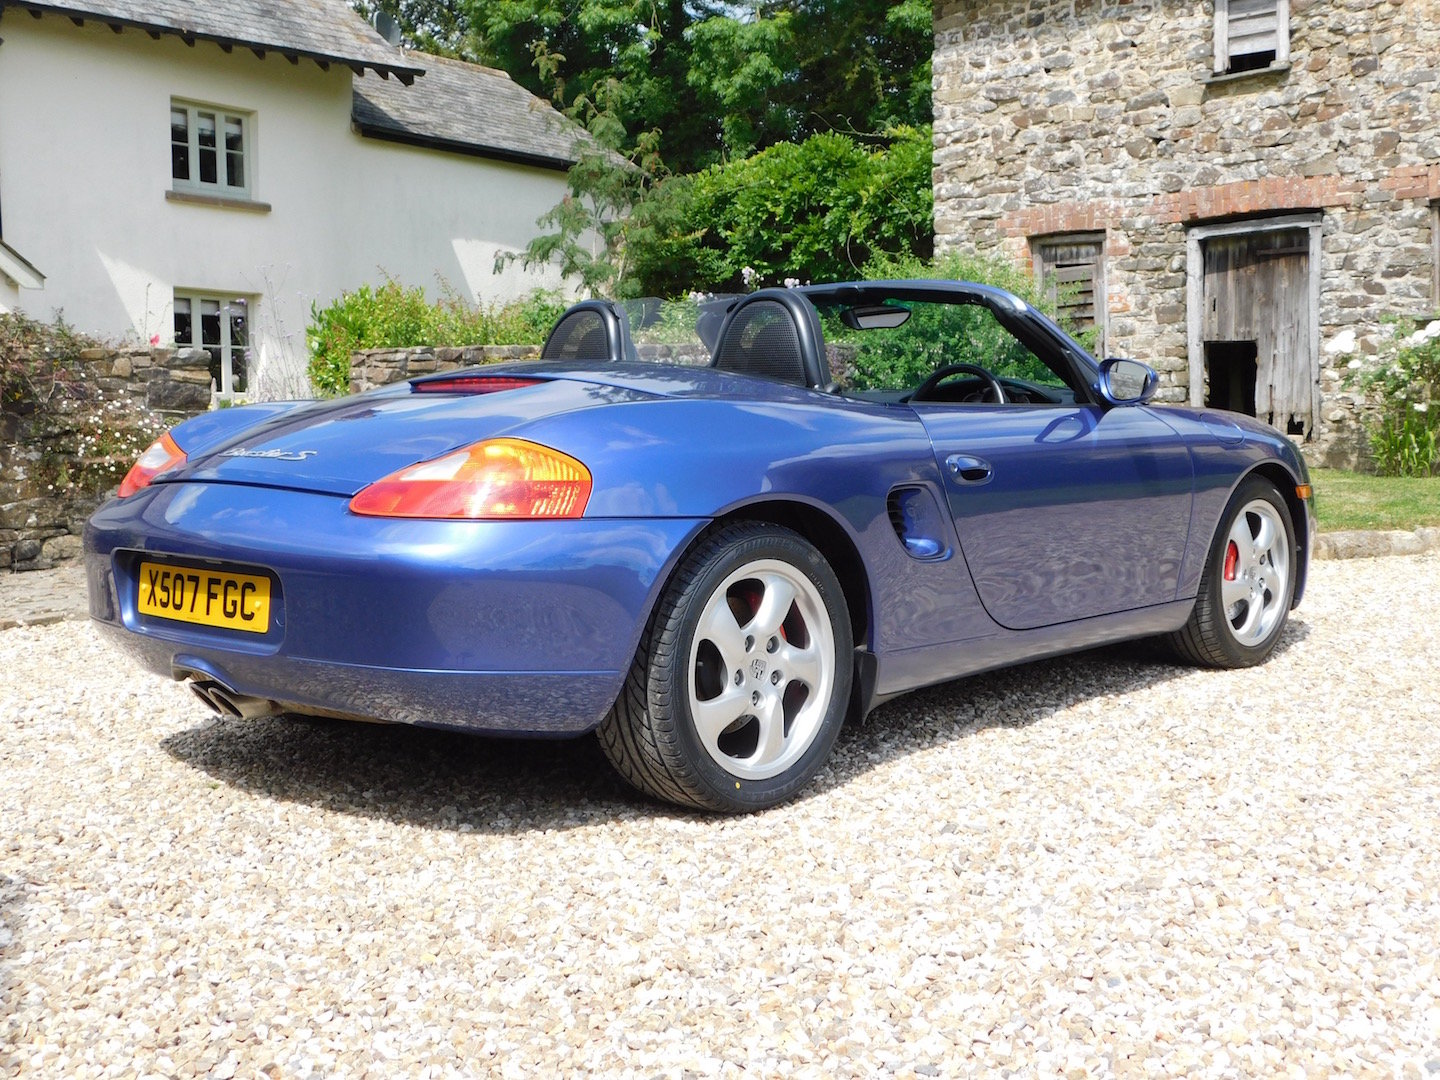 2000 Porsche 986 Boxster 3.2 S - 1 owner, 19k miles, concours For Sale (picture 2 of 6)